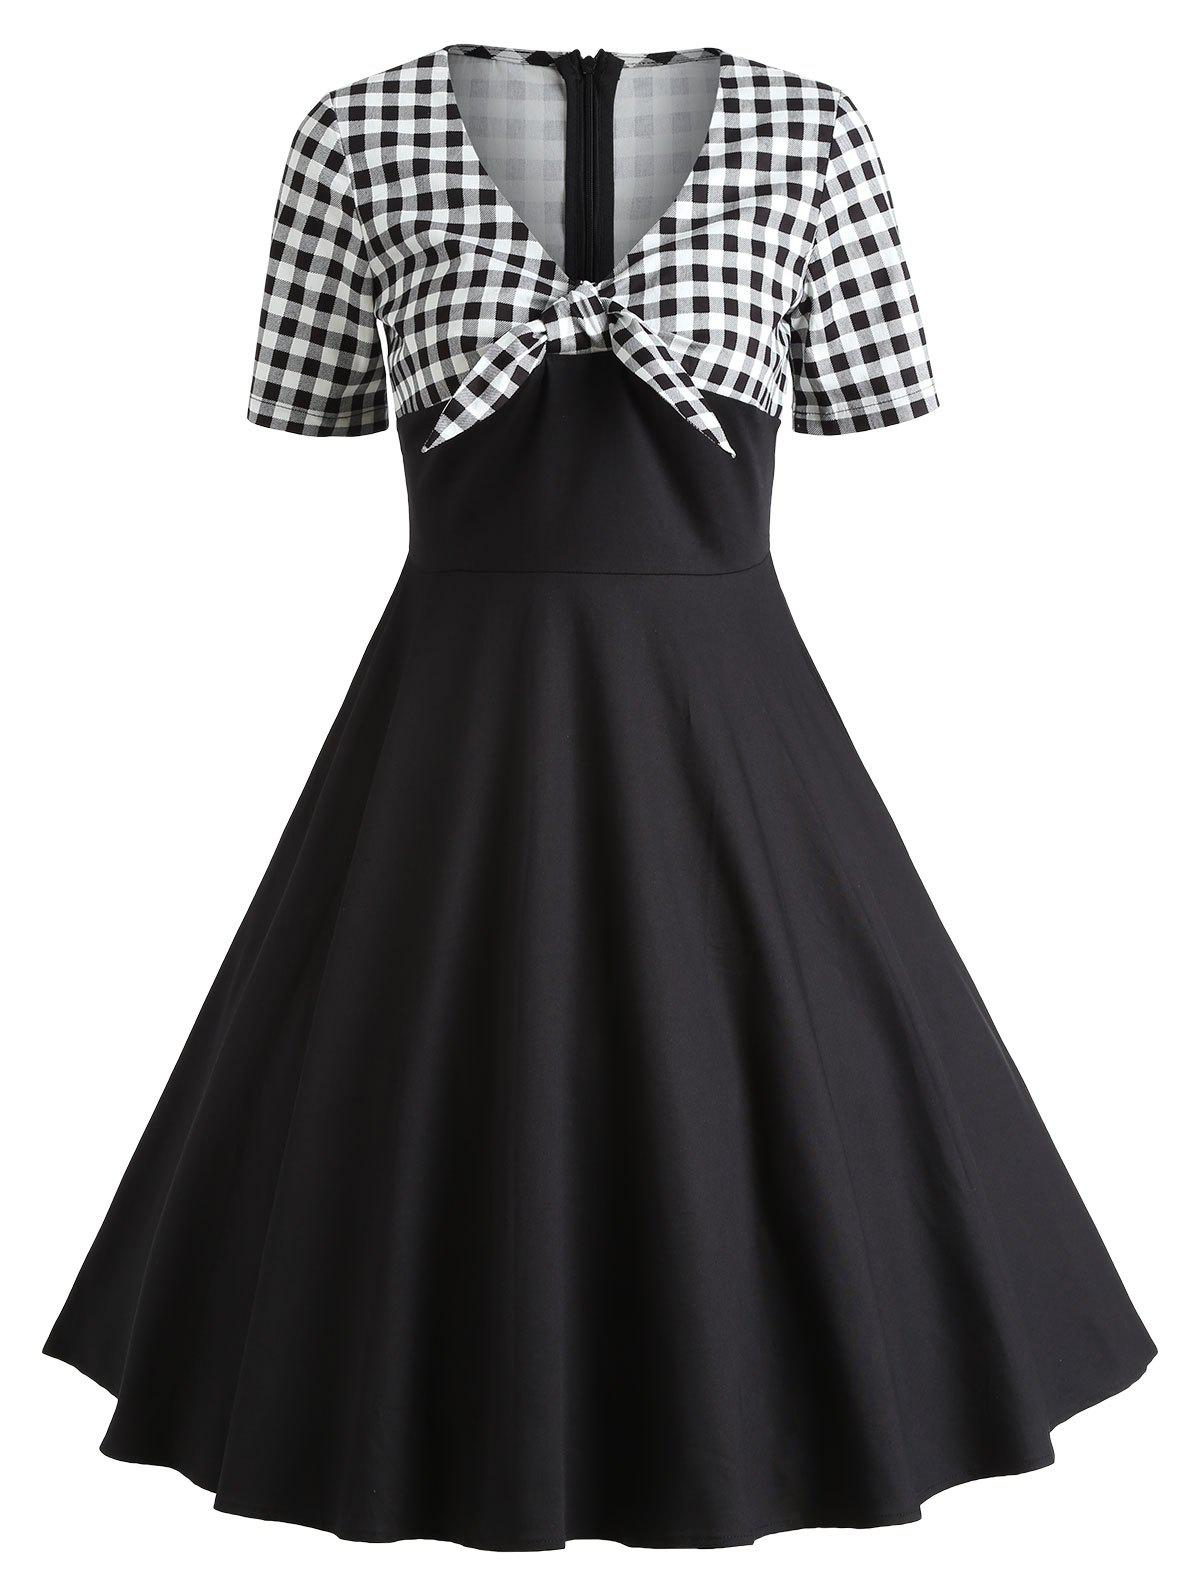 6a51ee2415 Trendy Retro Checked Bowknot Party Skater Dress